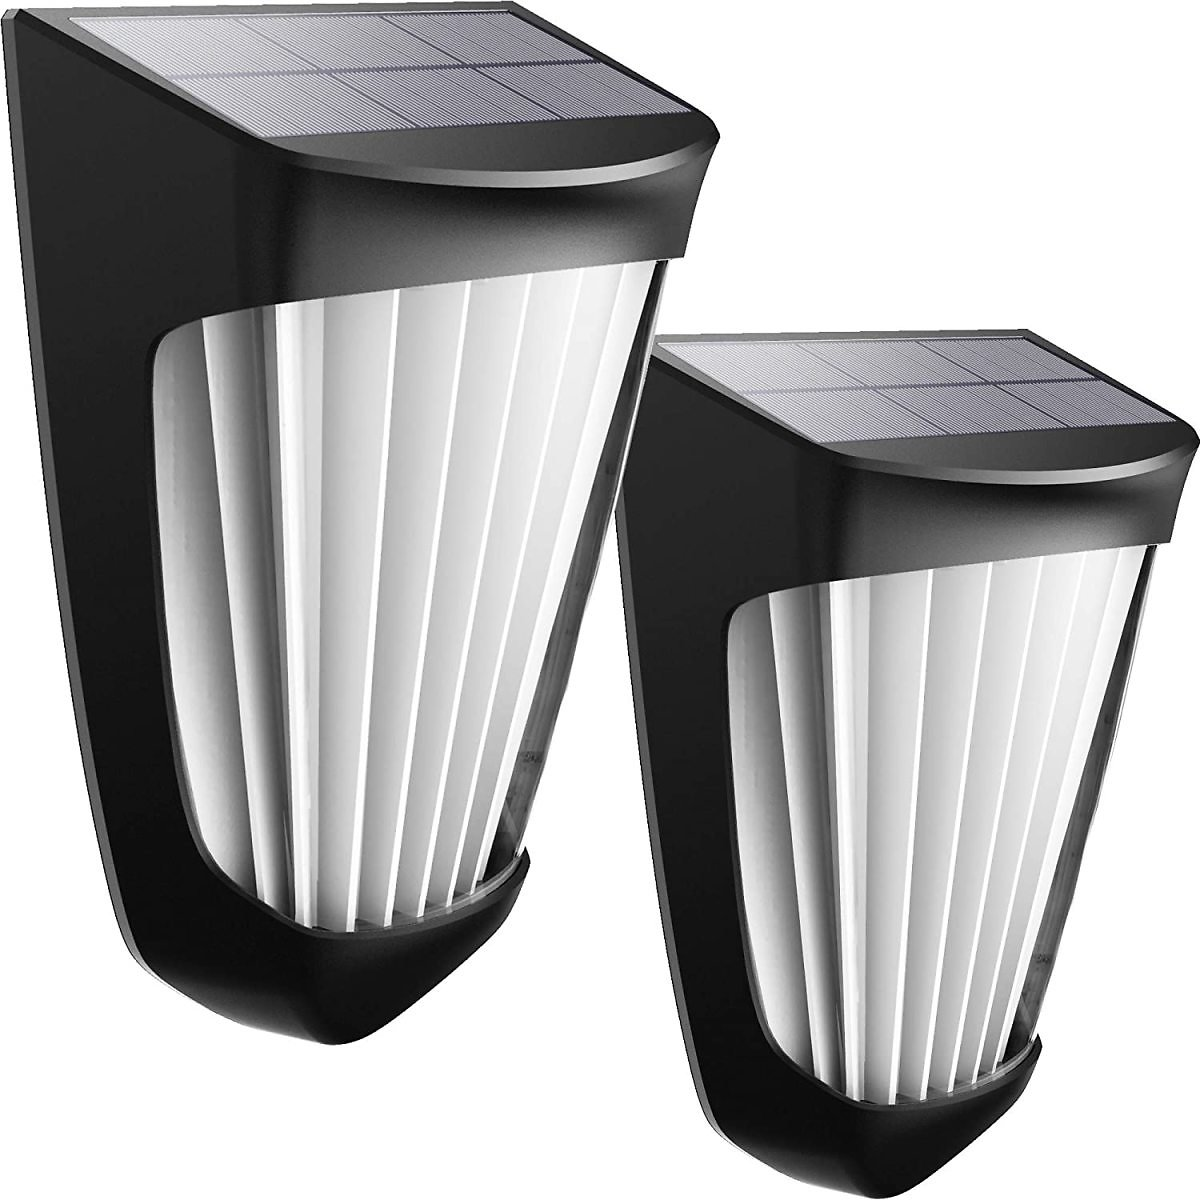 Solar Wall Lights Outdoor,Solar Deck Light 10 LED Wireless IP54 Waterproof Security Solar Motion Lights for Outdoor Deck, Patio,